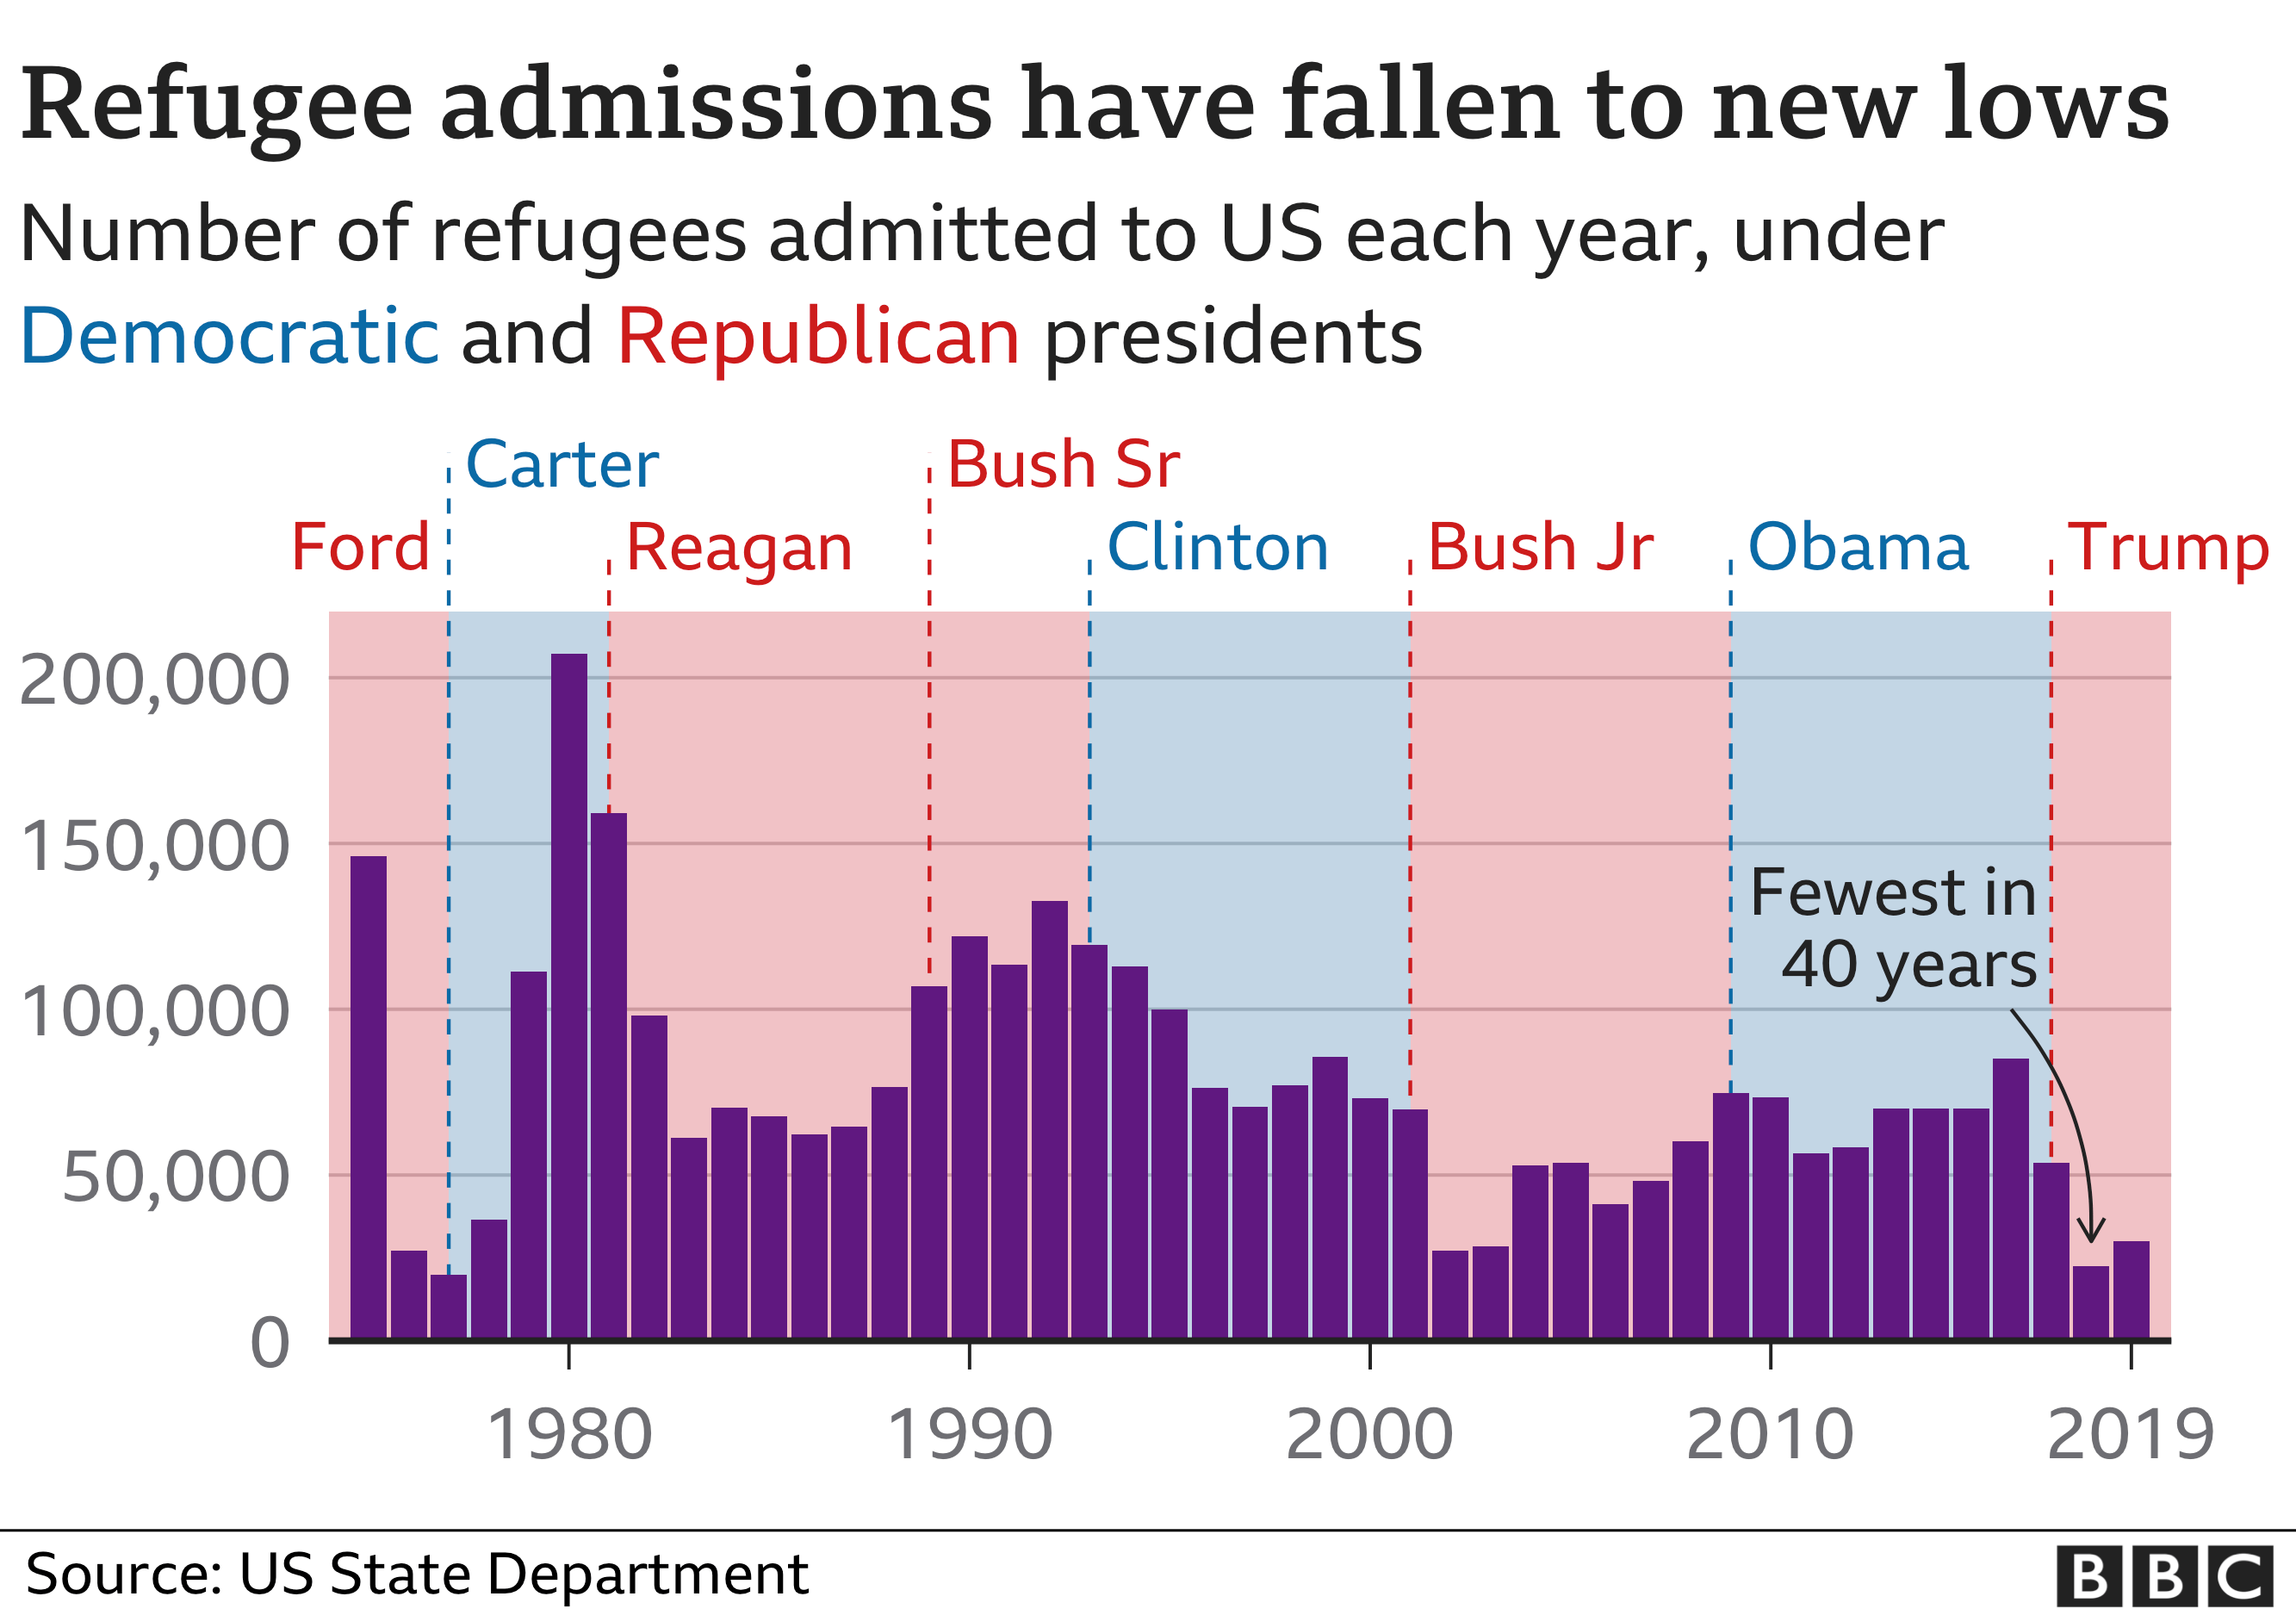 Refugee admissions have fallen to new lows